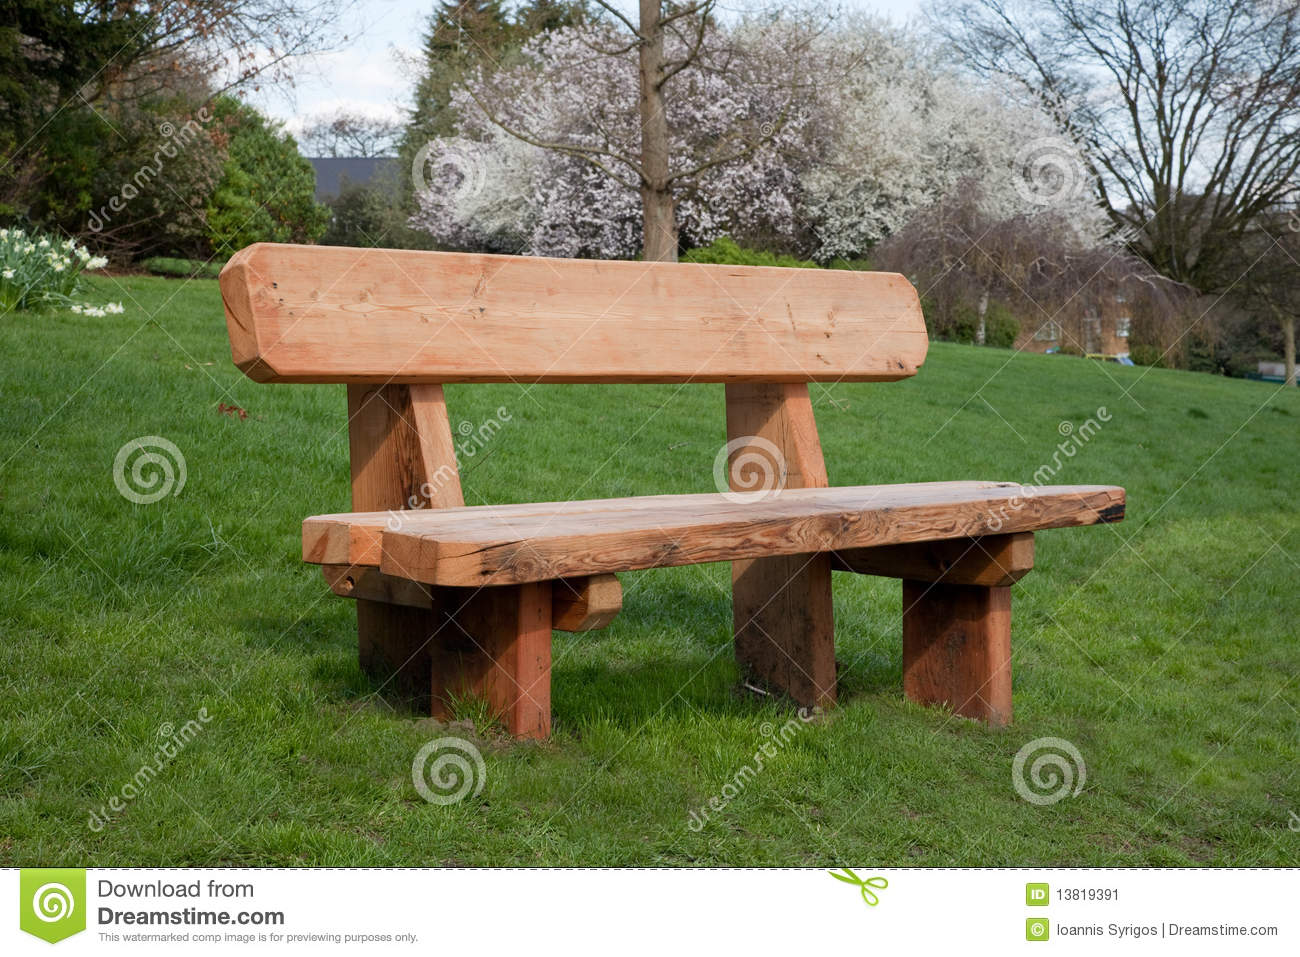 Wooden bench on grass stock image. Image of empty, grass ...